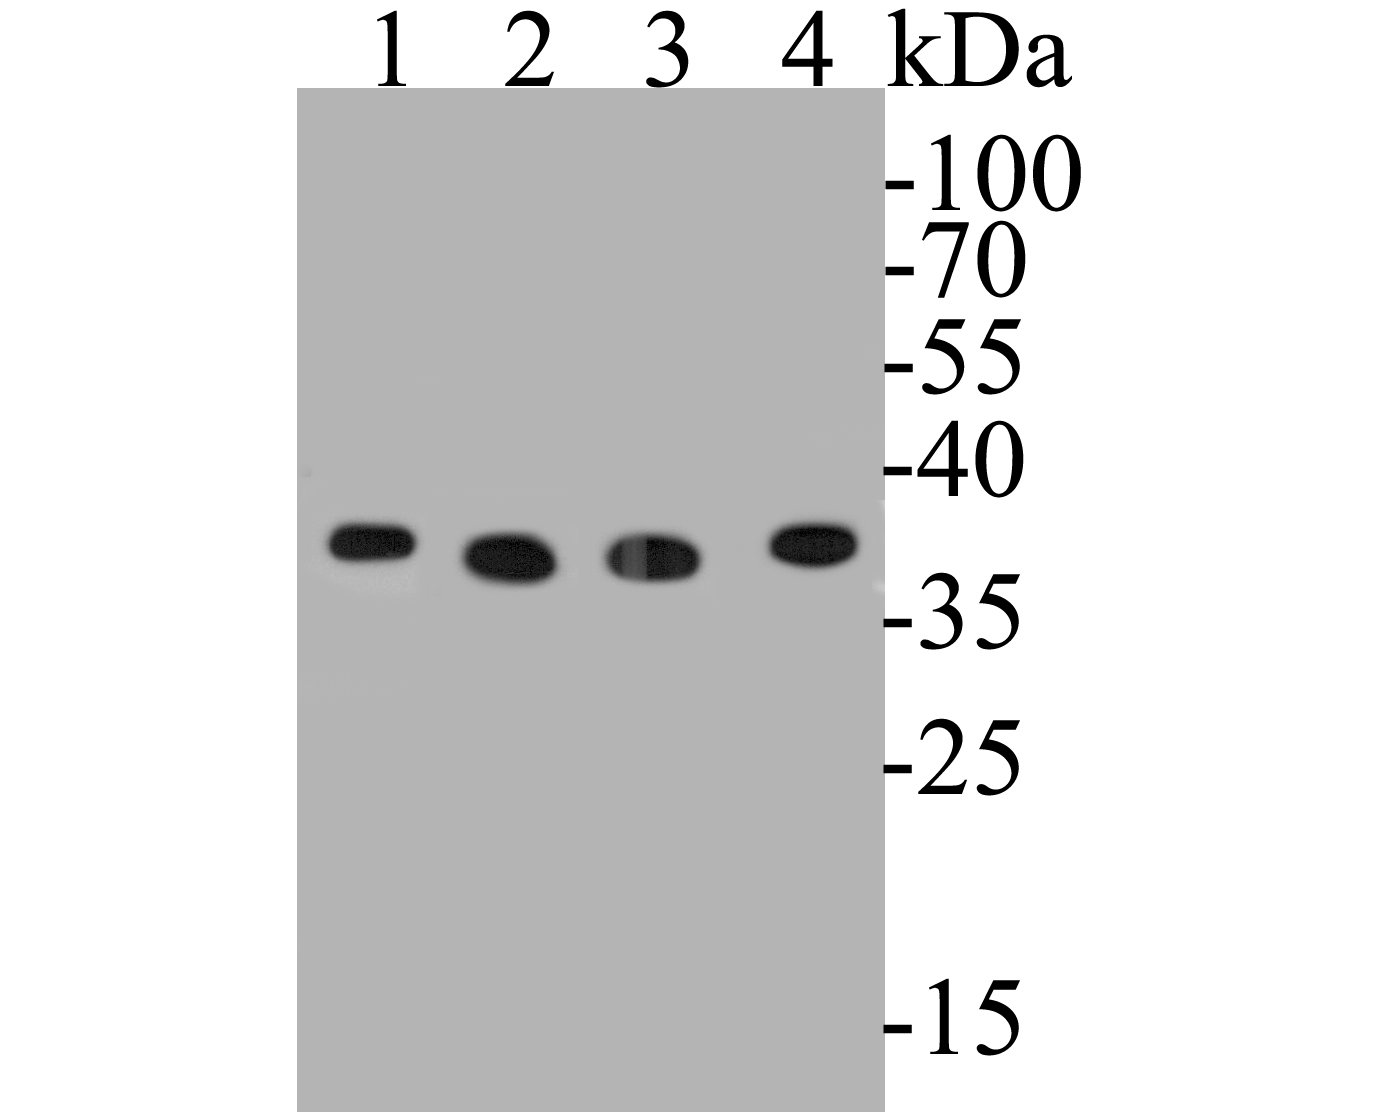 Western blot analysis of GAPDH on different lysates. Proteins were transferred to a PVDF membrane and blocked with 5% BSA in PBS for 1 hour at room temperature. The primary antibody (EM1901-57, 1/2,000) was used in 5% BSA at room temperature for 2 hours. Goat Anti-Mouse IgG - HRP Secondary Antibody (HA1006) at 1:5,000 dilution was used for 1 hour at room temperature.<br /> Positive control: <br /> Lane 1: HepG2 cell lysate<br /> Lane 2: PC-12 cell lysate<br /> Lane 3: F9 cell lysate<br /> Lane 4: A549 cell lysate